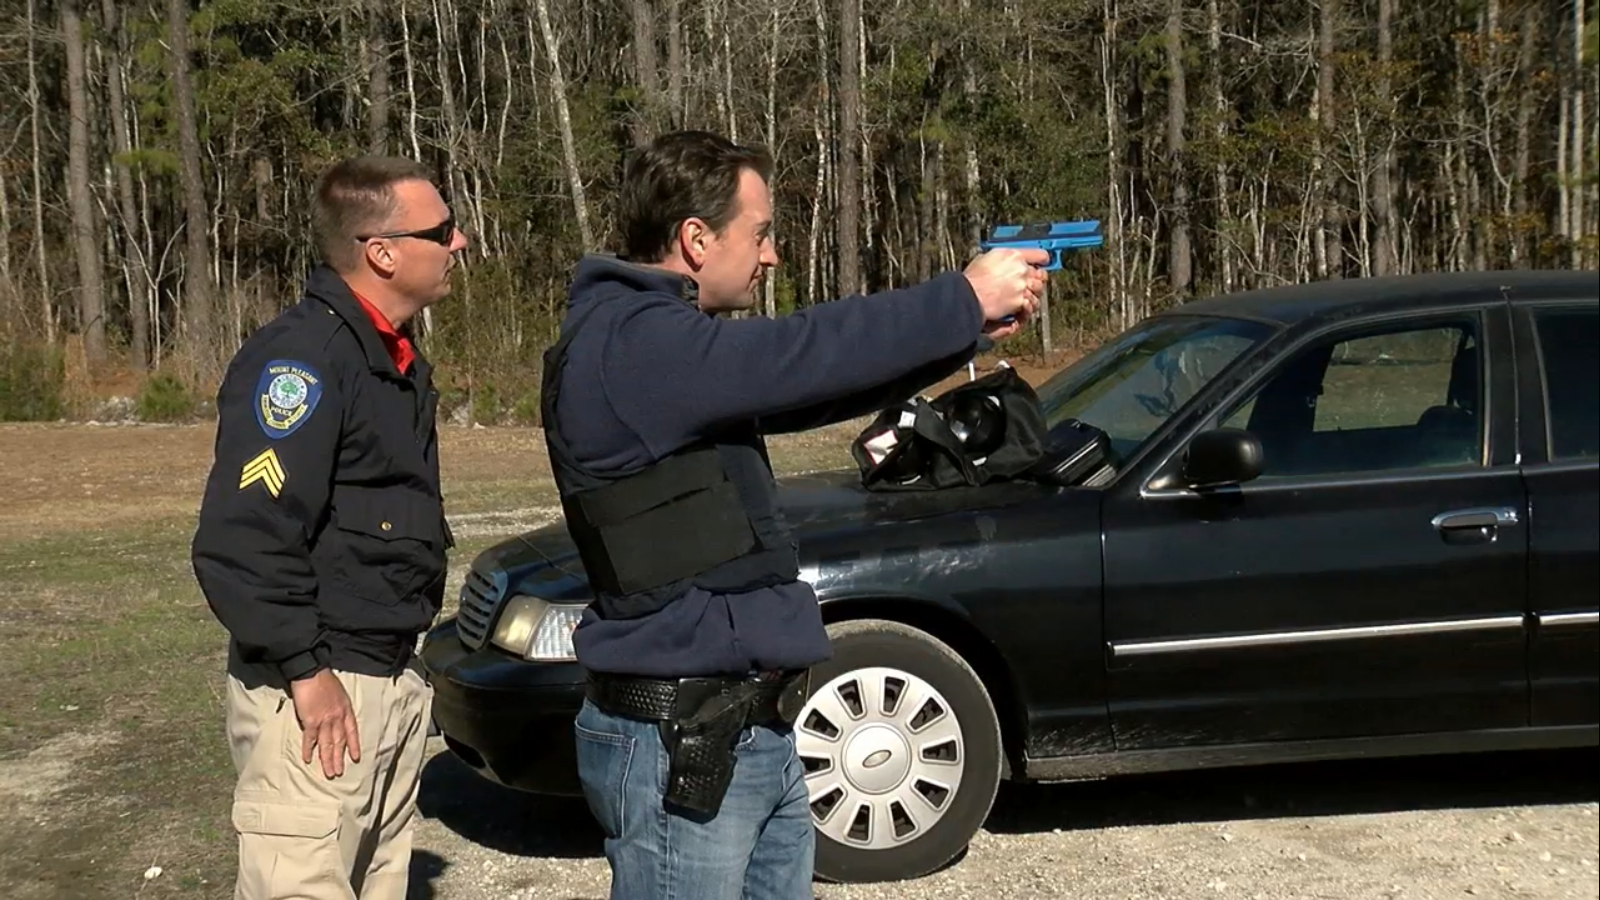 MPPD Weapons Training (WCIV)